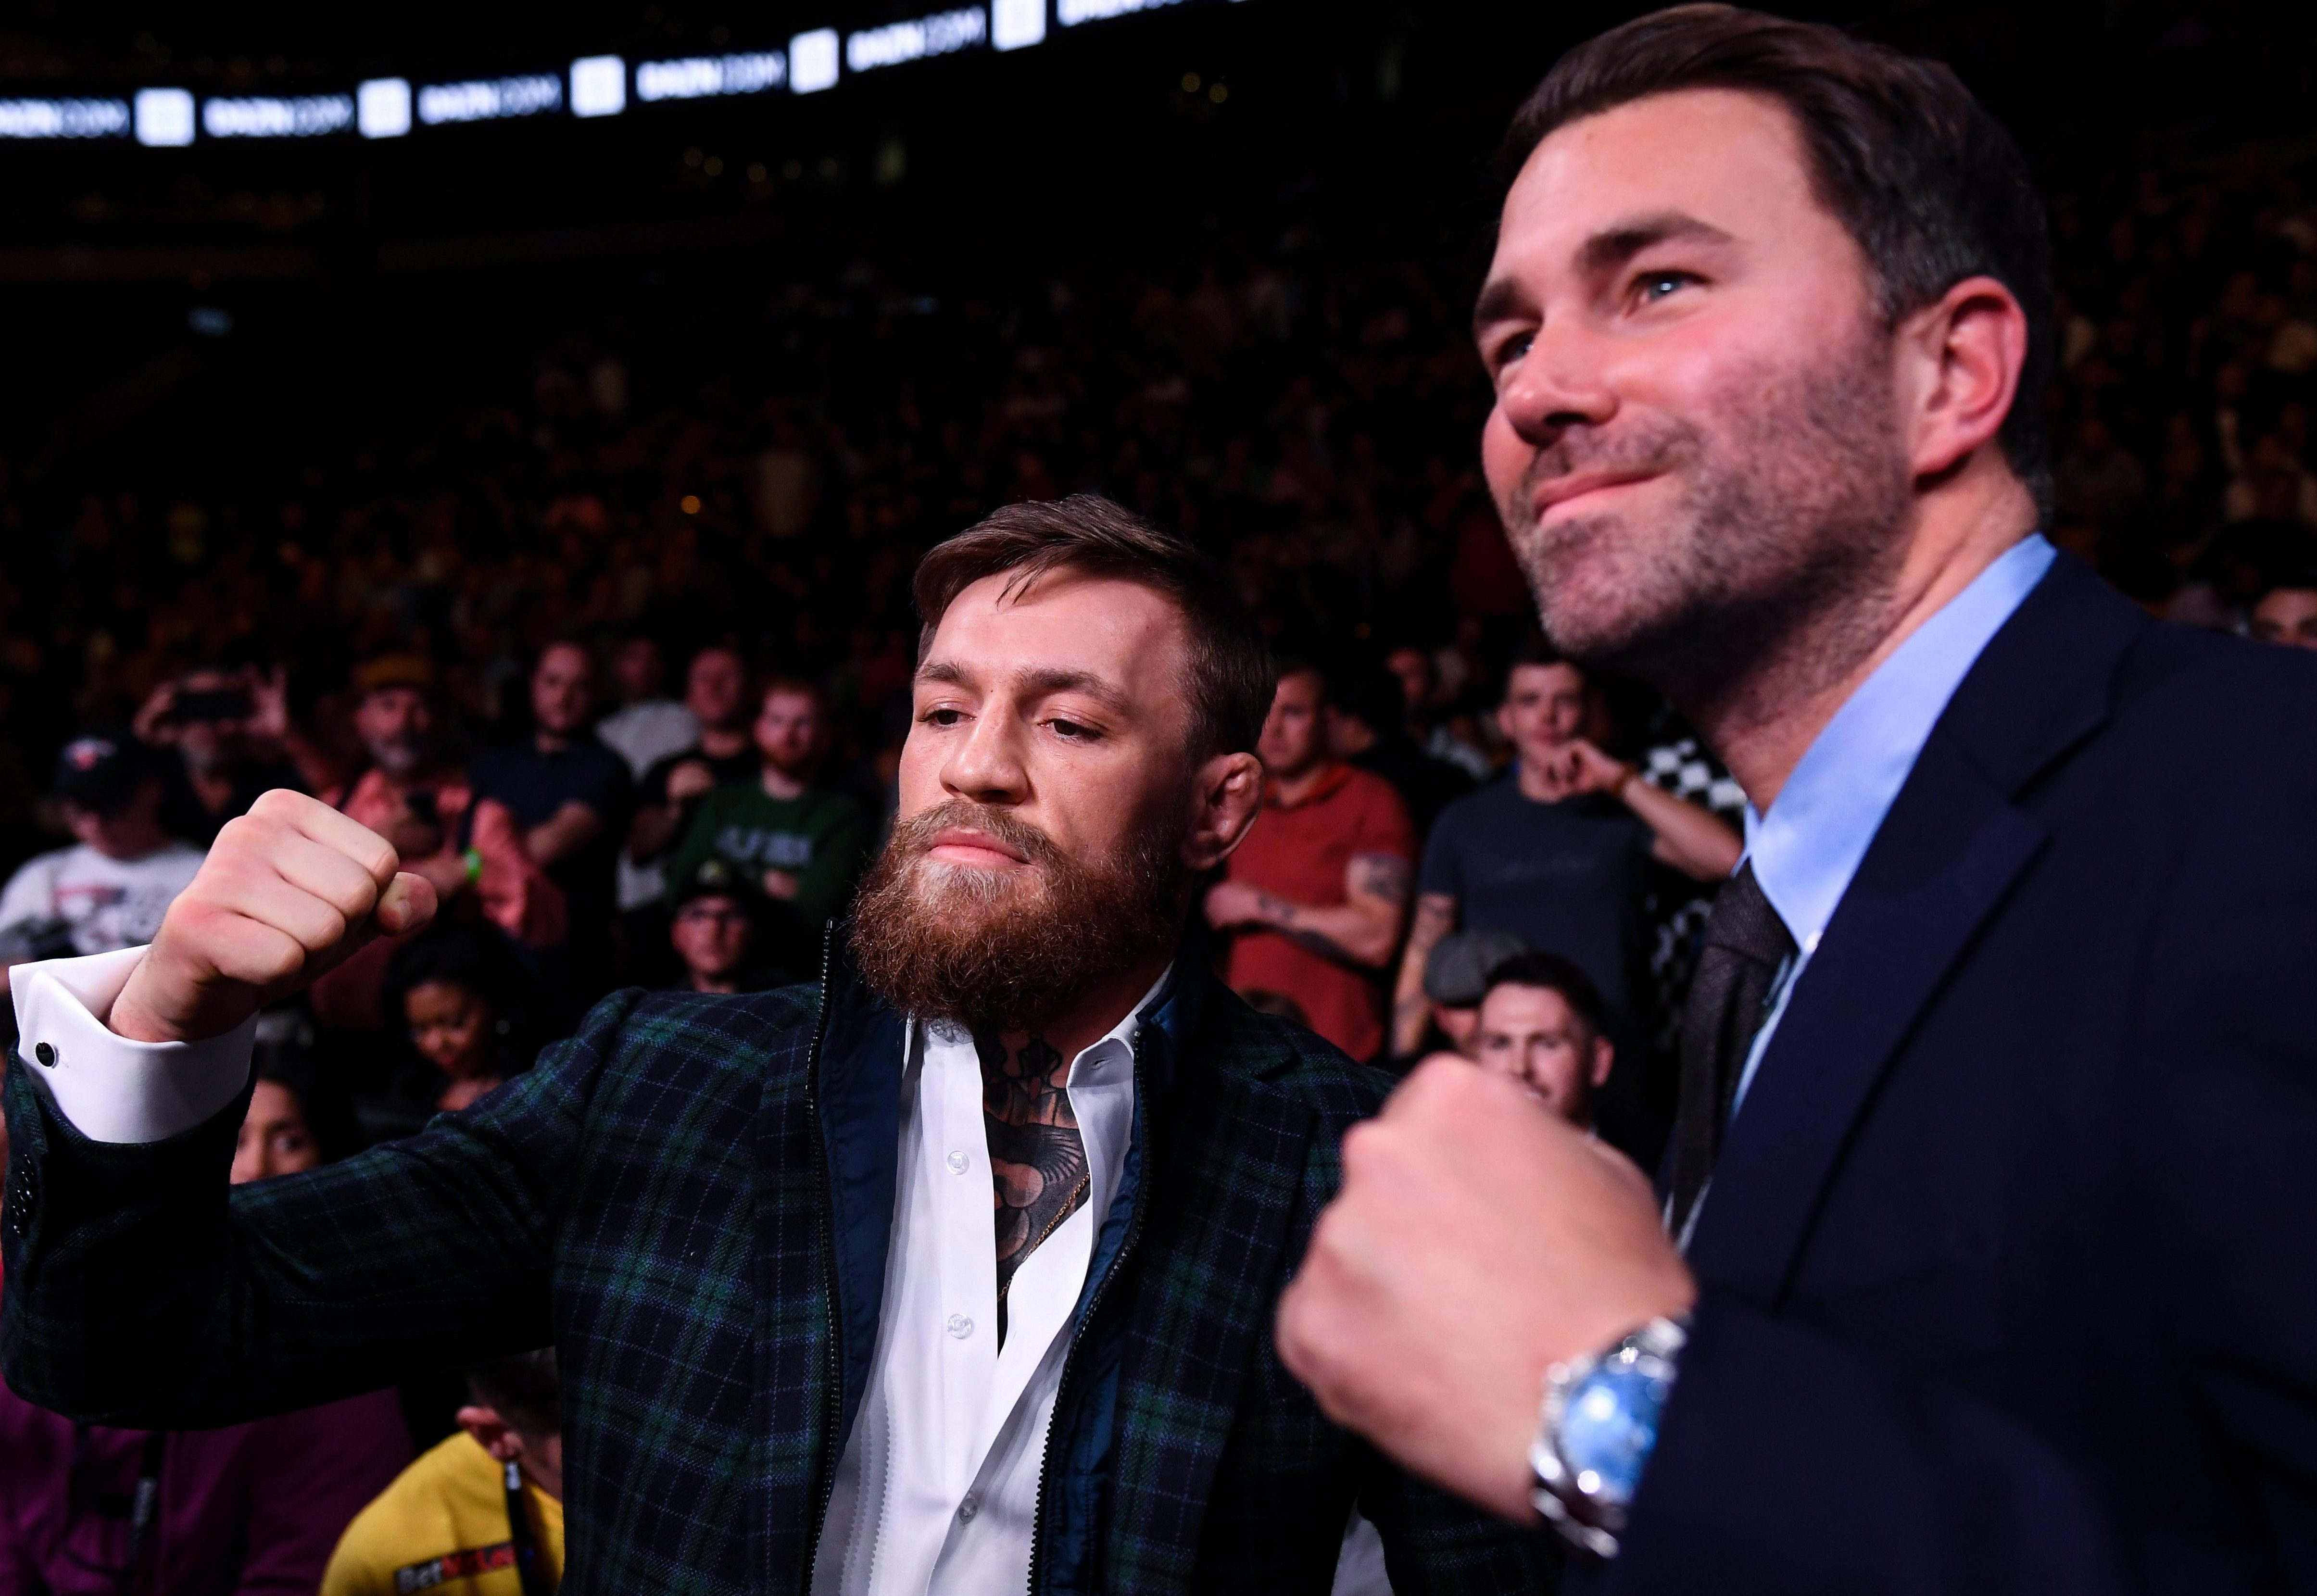 Hearn, seen here with Conor McGregor, labelled Wilder a time waster following months of failed negotiations to secure a fight against Anthony Joshua